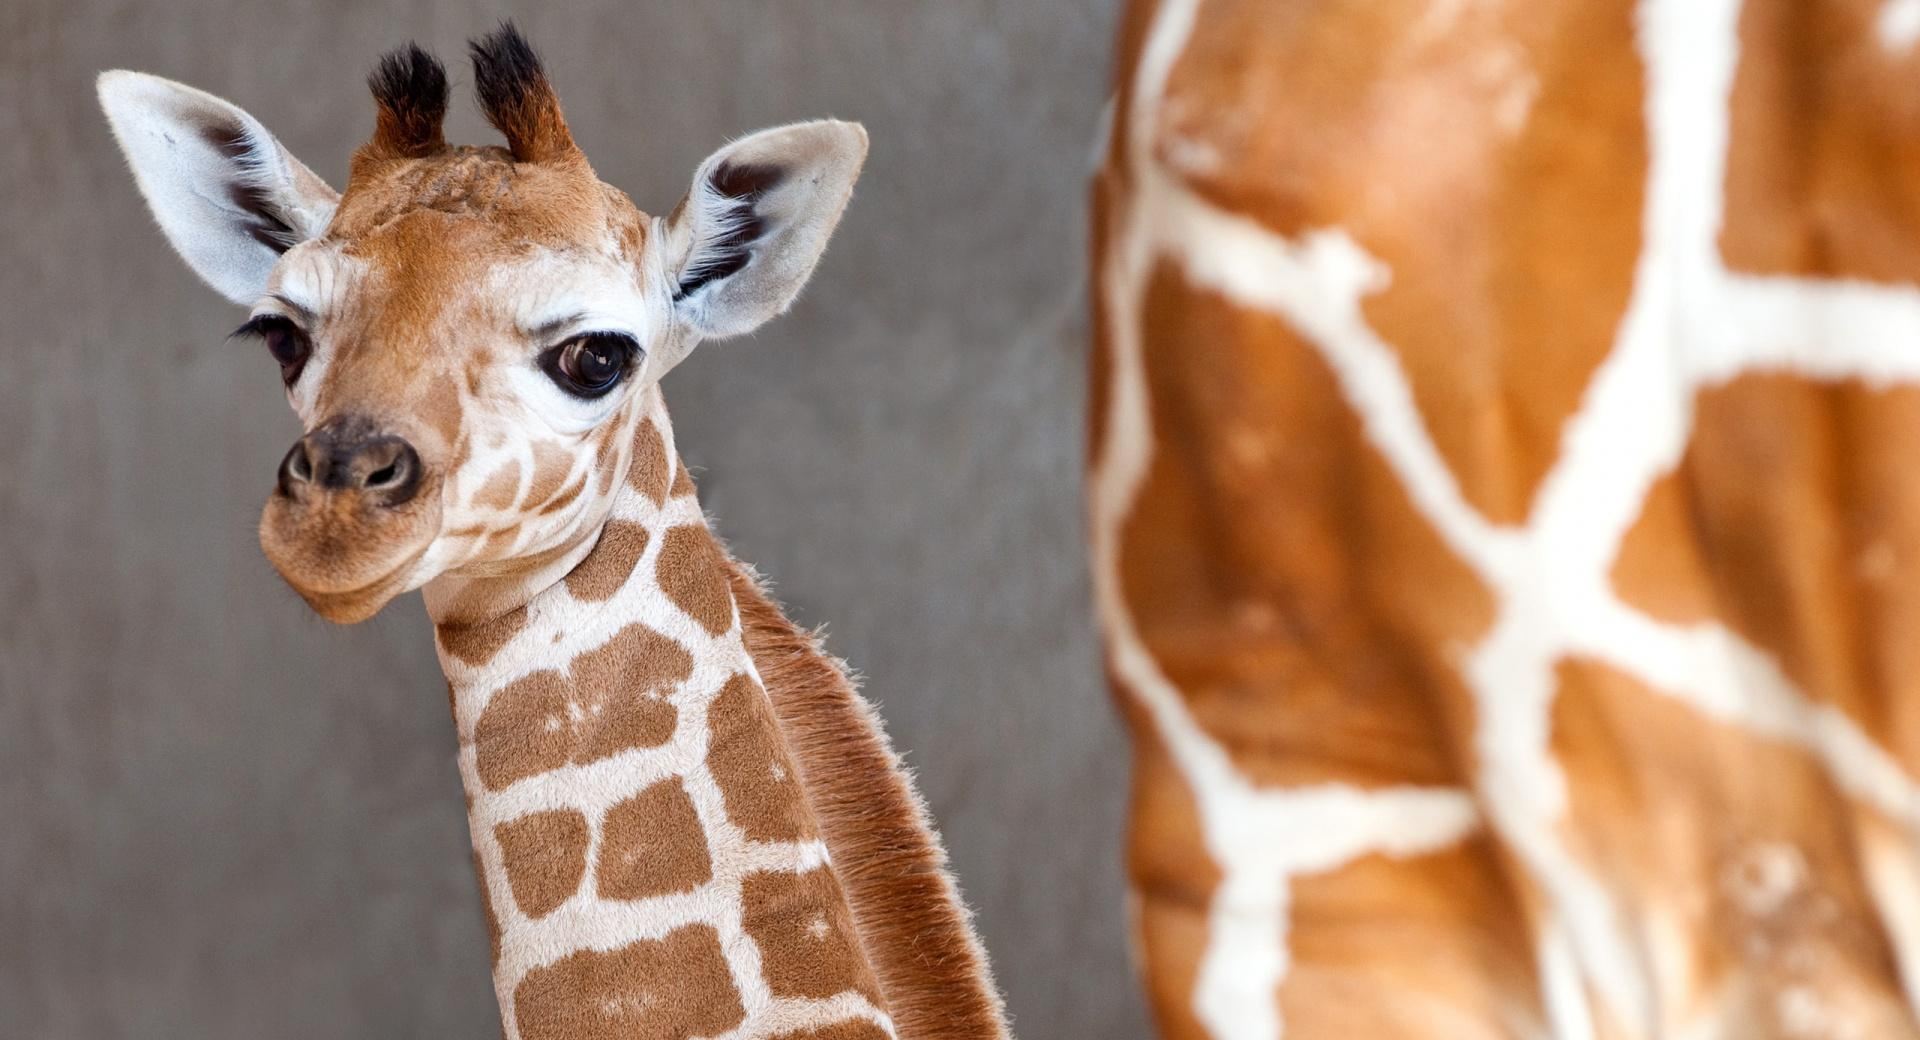 Baby Giraffe at 640 x 1136 iPhone 5 size wallpapers HD quality